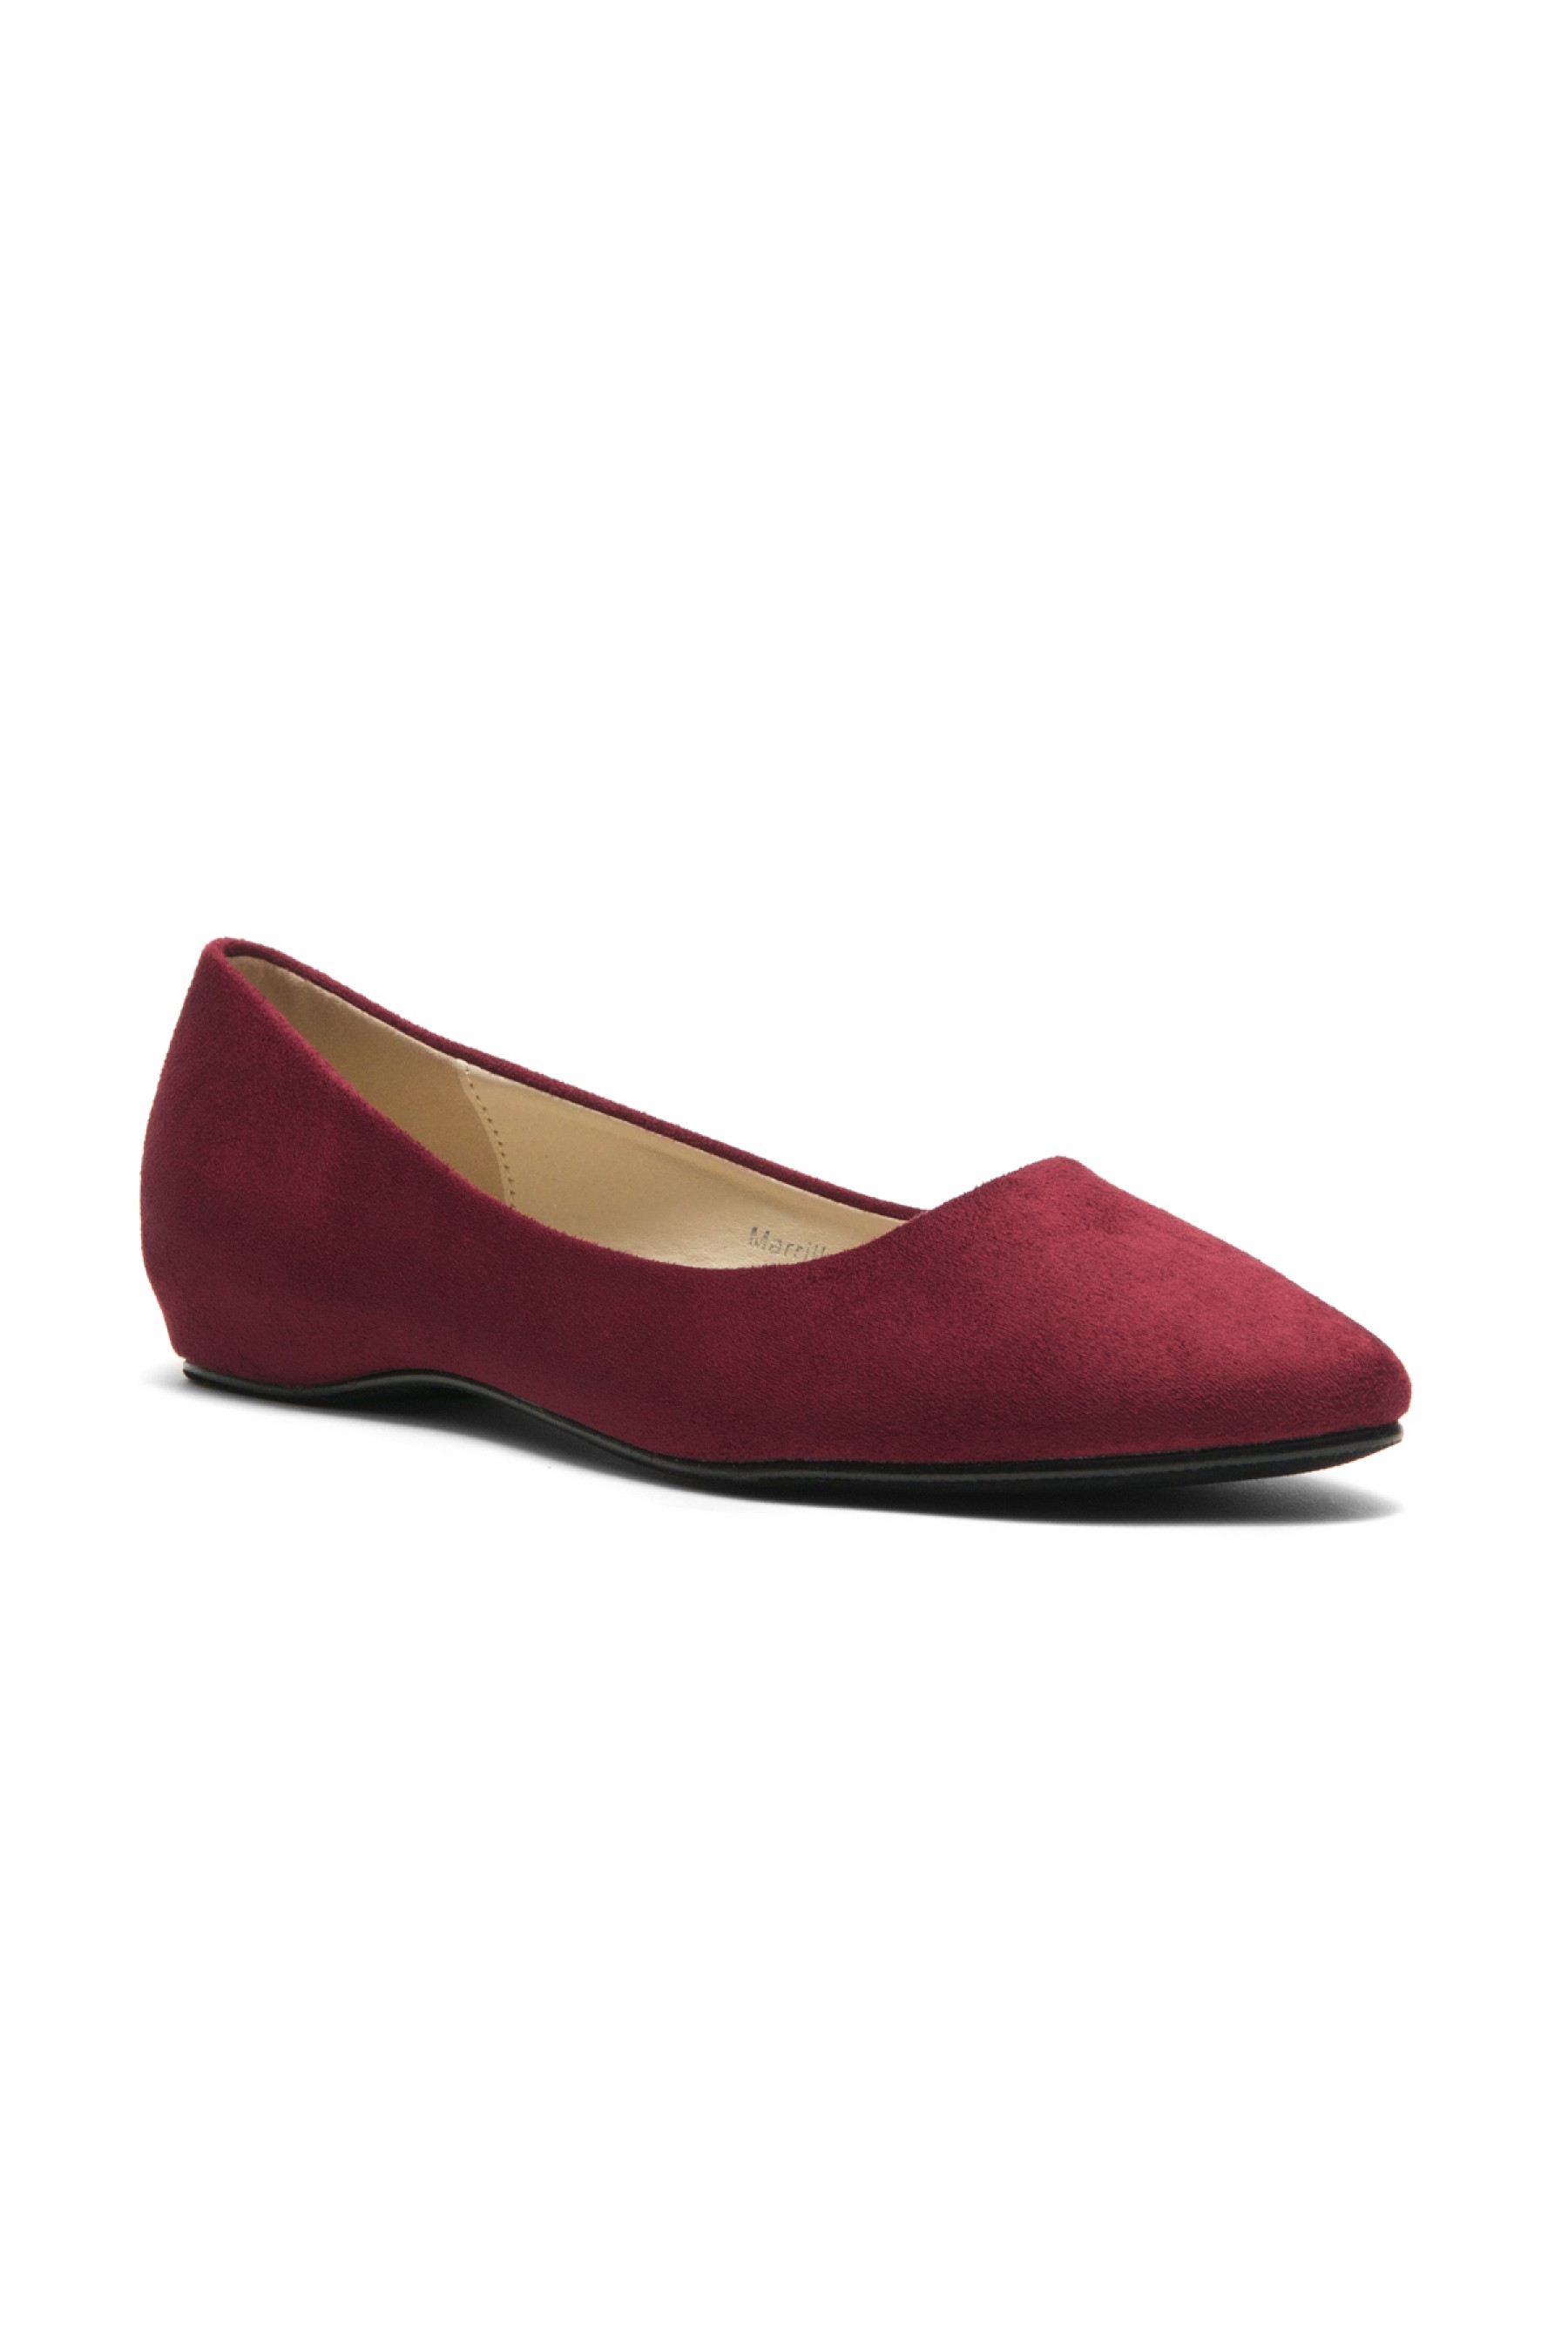 Women's Burgundy Marrillee Sueded Pump Flat with Lightly Pointed Toe